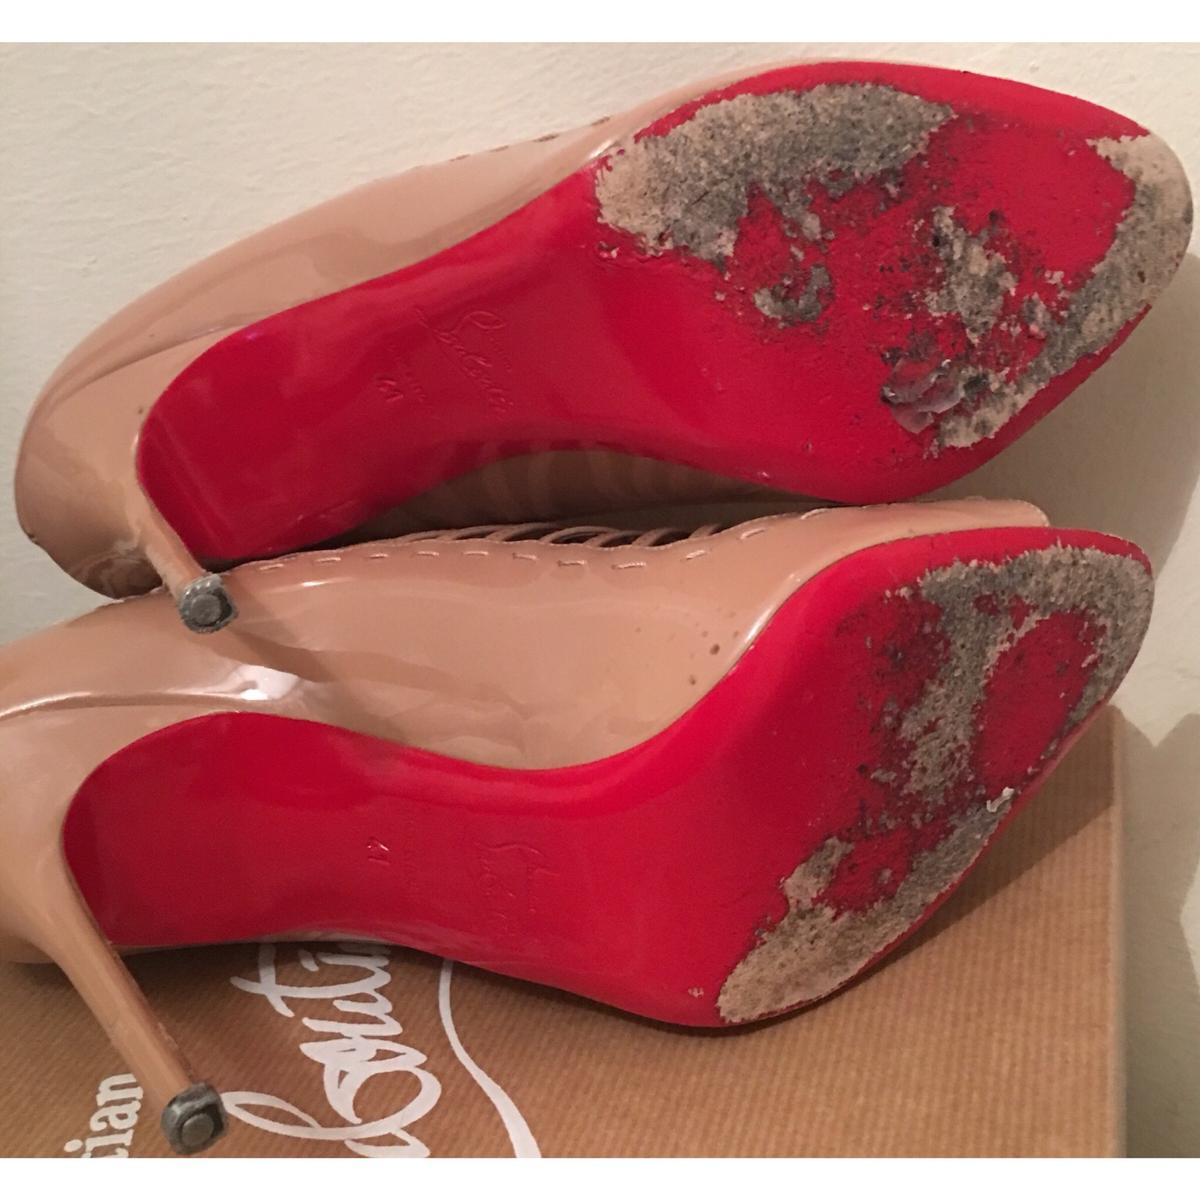 official photos 369f1 47dd3 Christian Louboutin Shoes